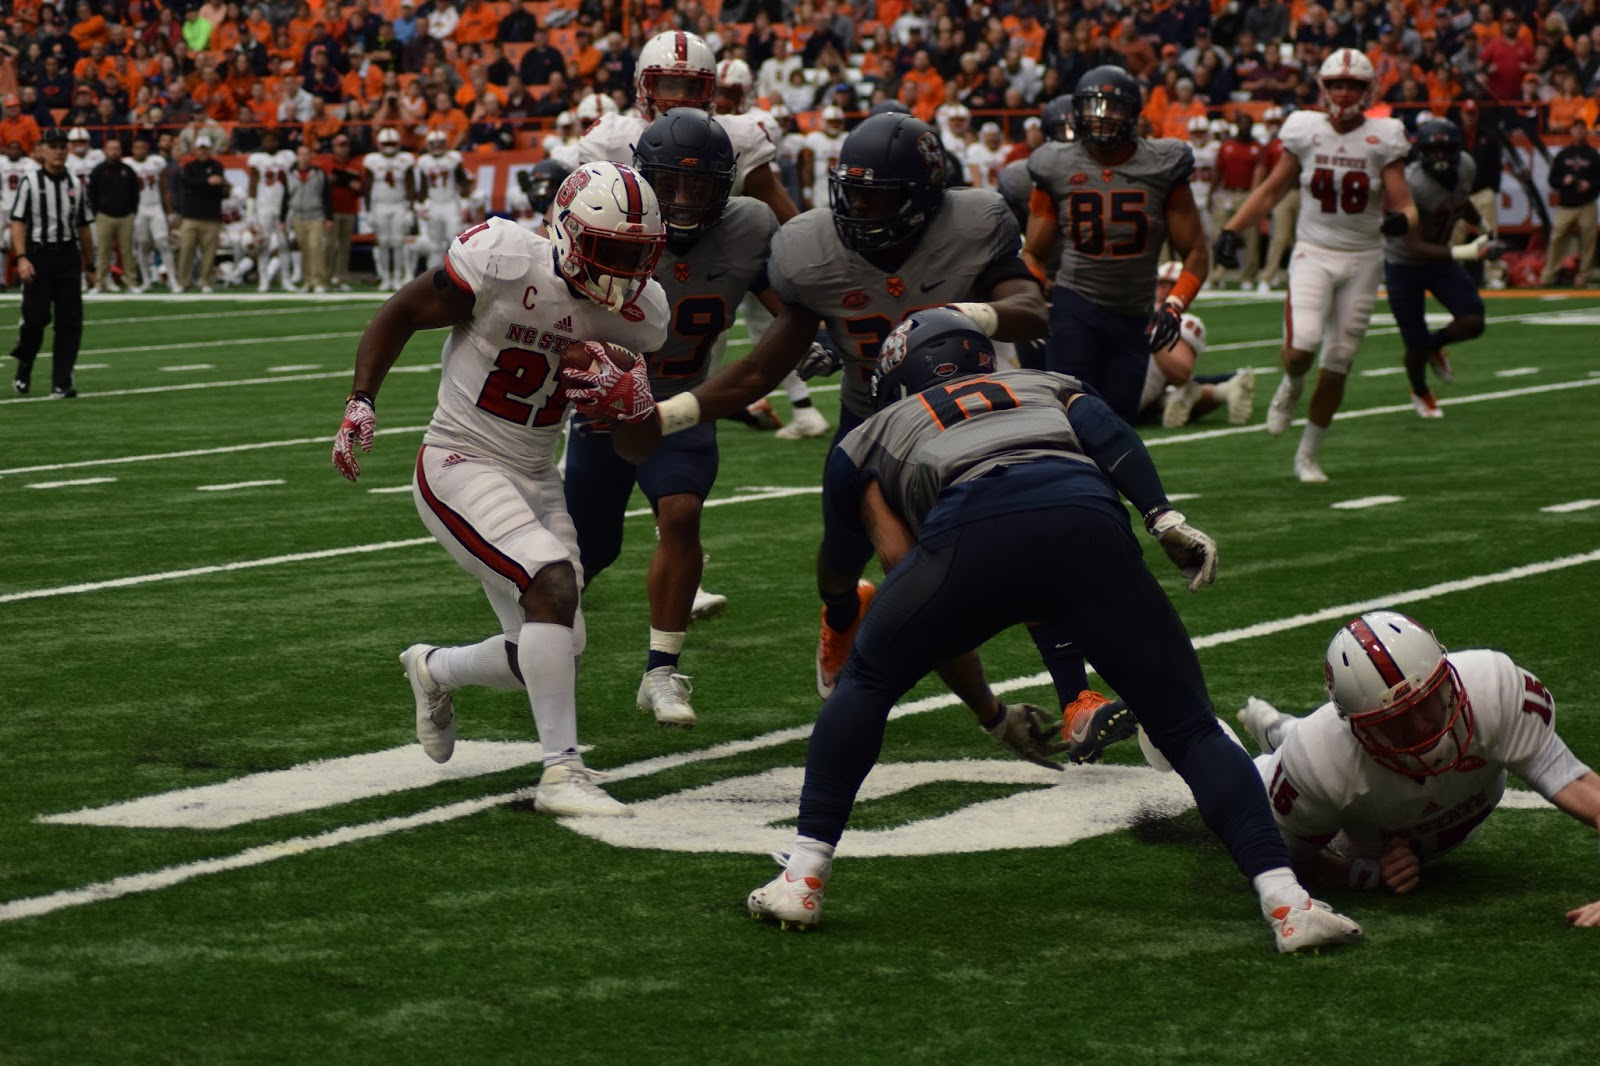 Wolfpack Downs Dungey-less Orange, 35-20